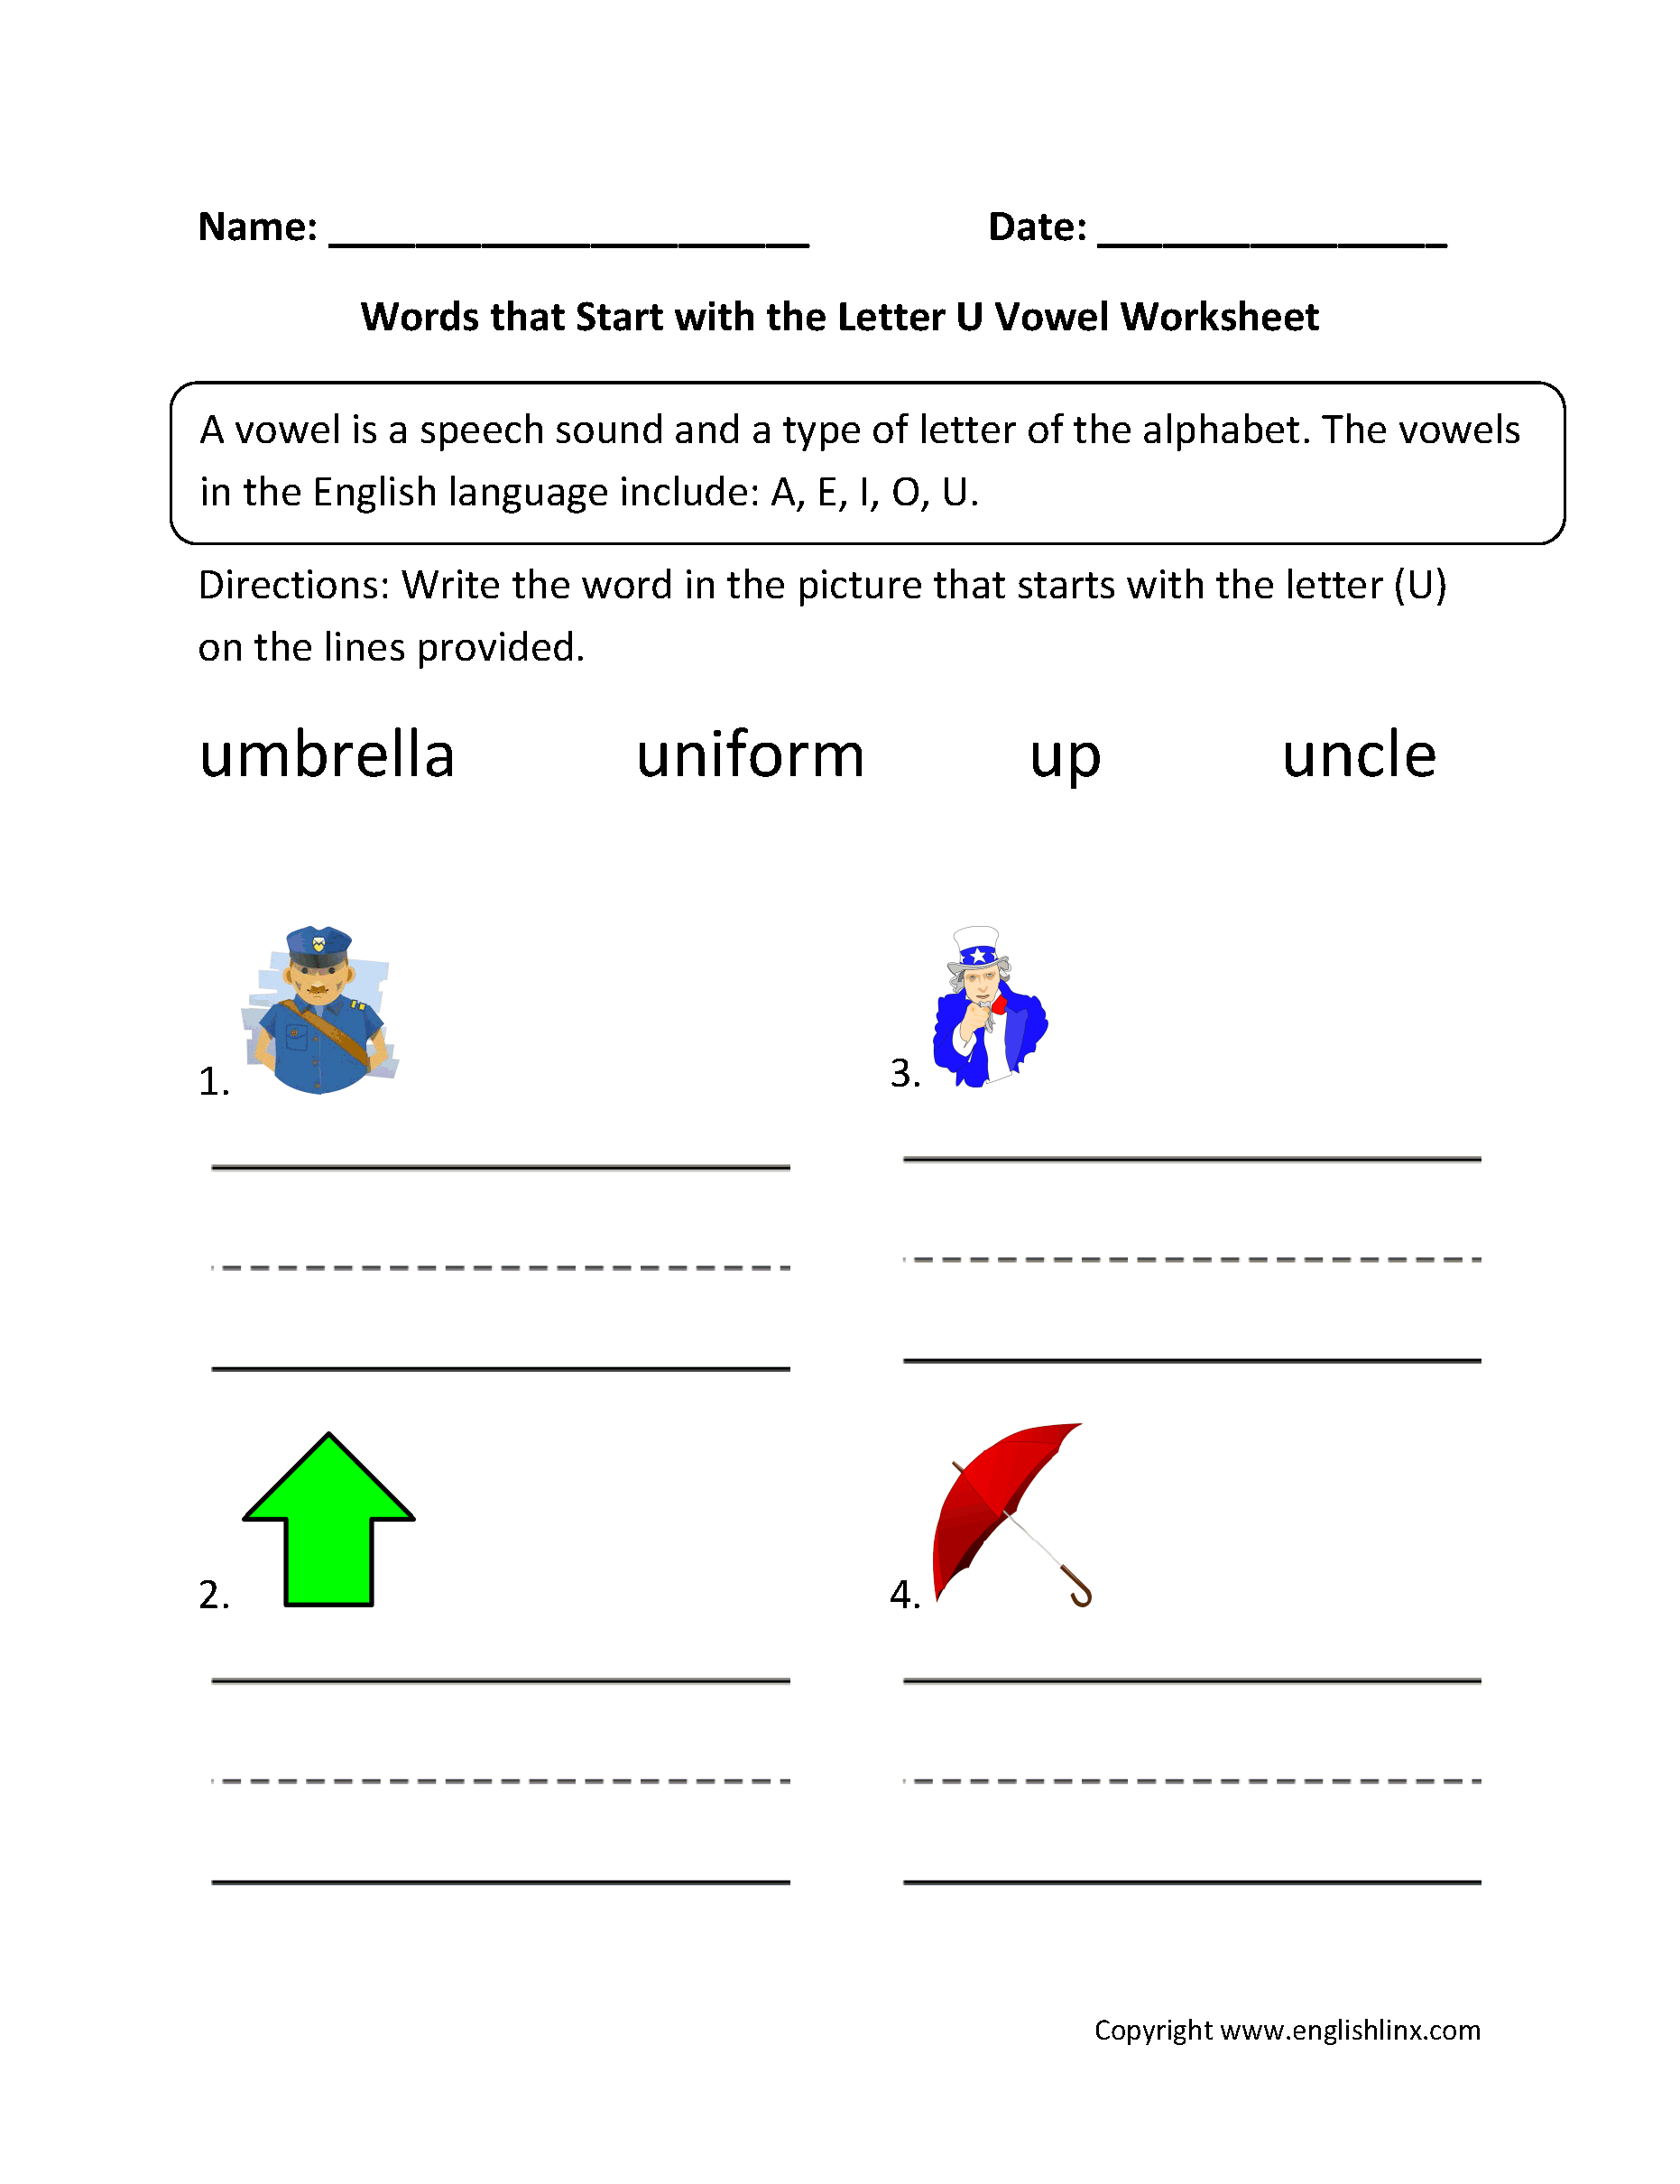 words that start with the letter u vowel worksheets general vowel worksheets 26217